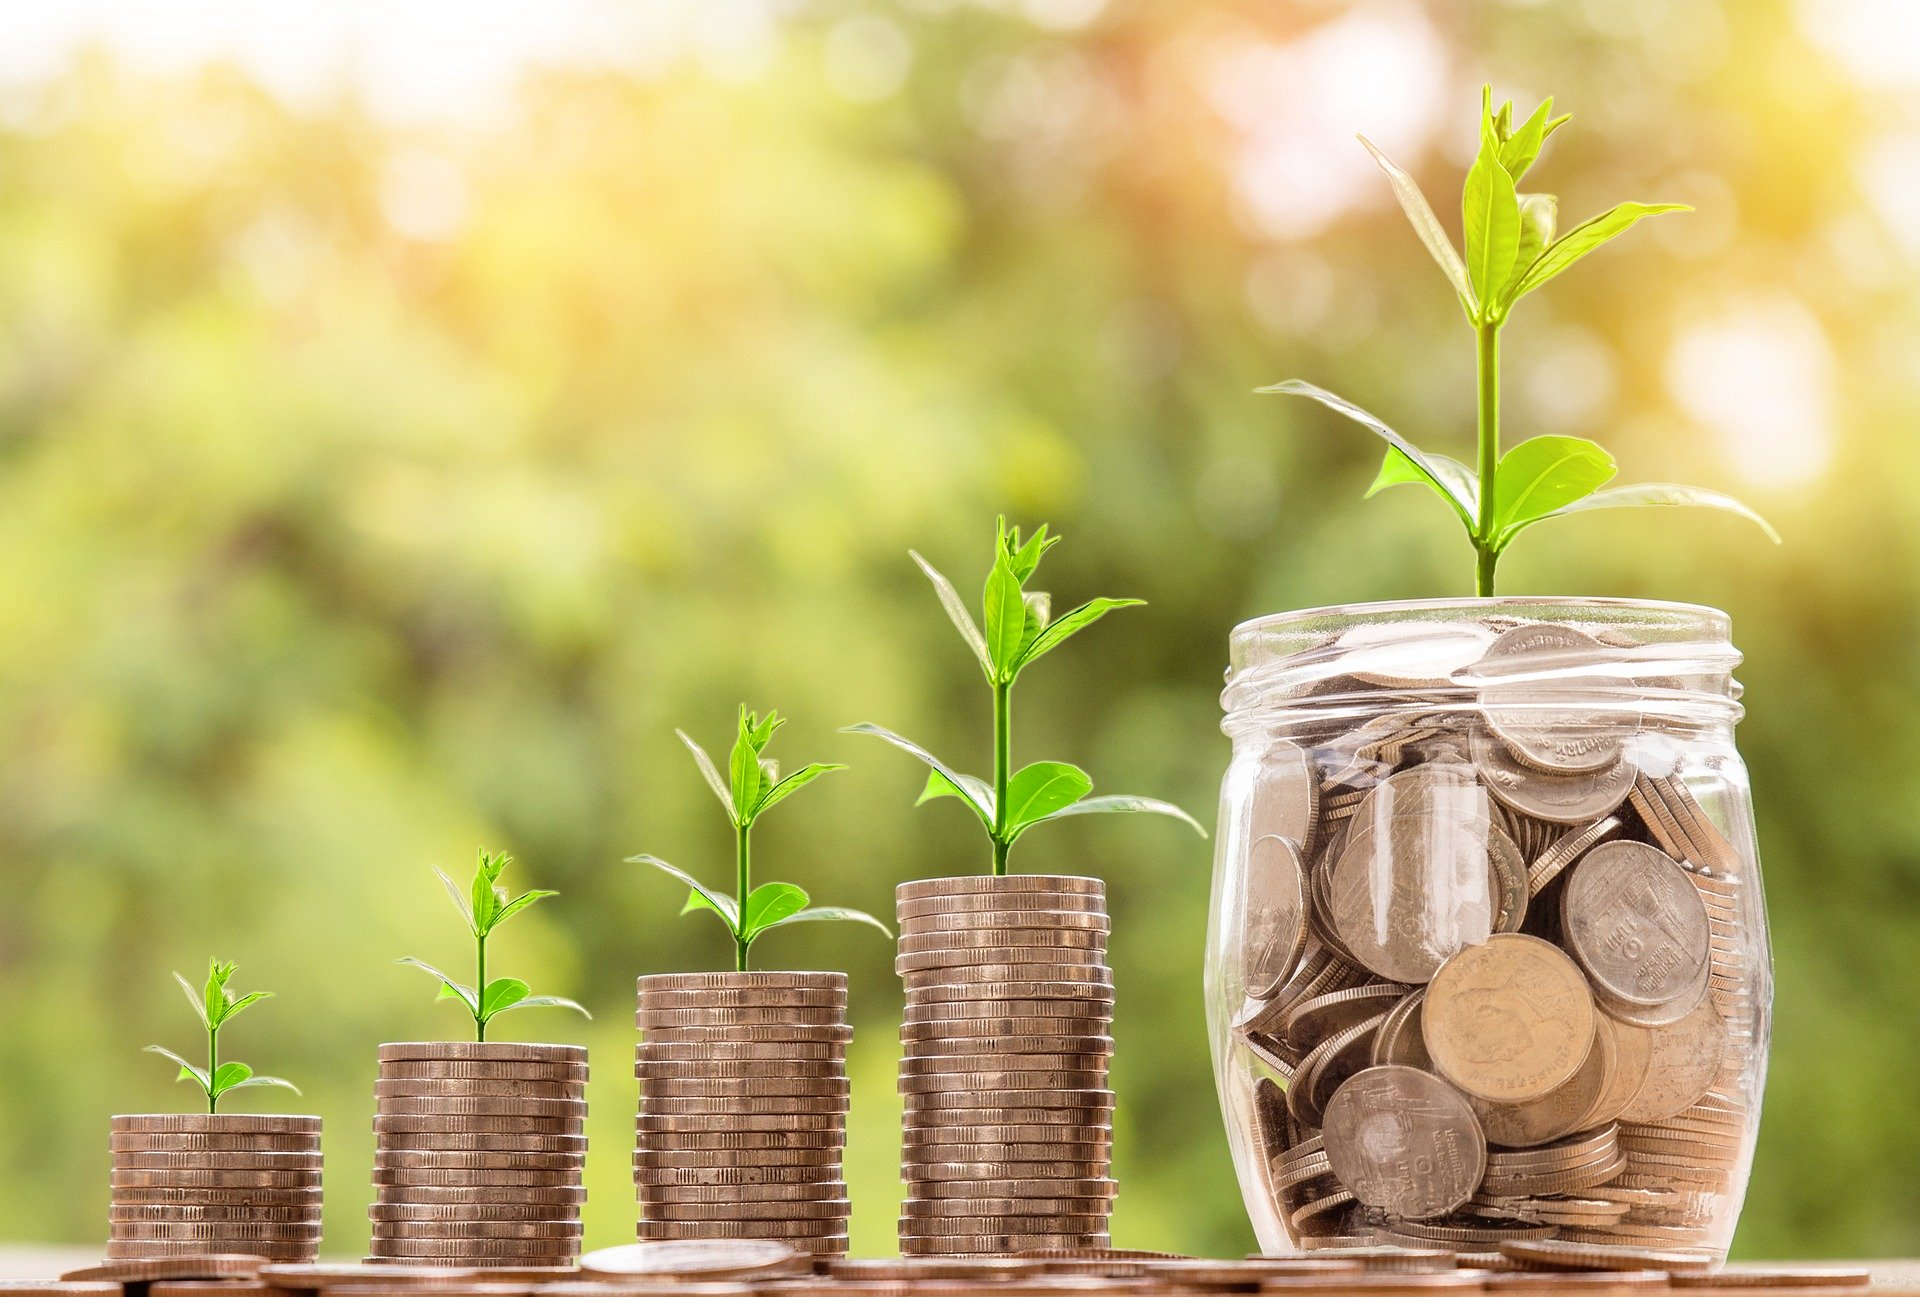 Get More Business Podcast Making Deposits into Your Value Bank